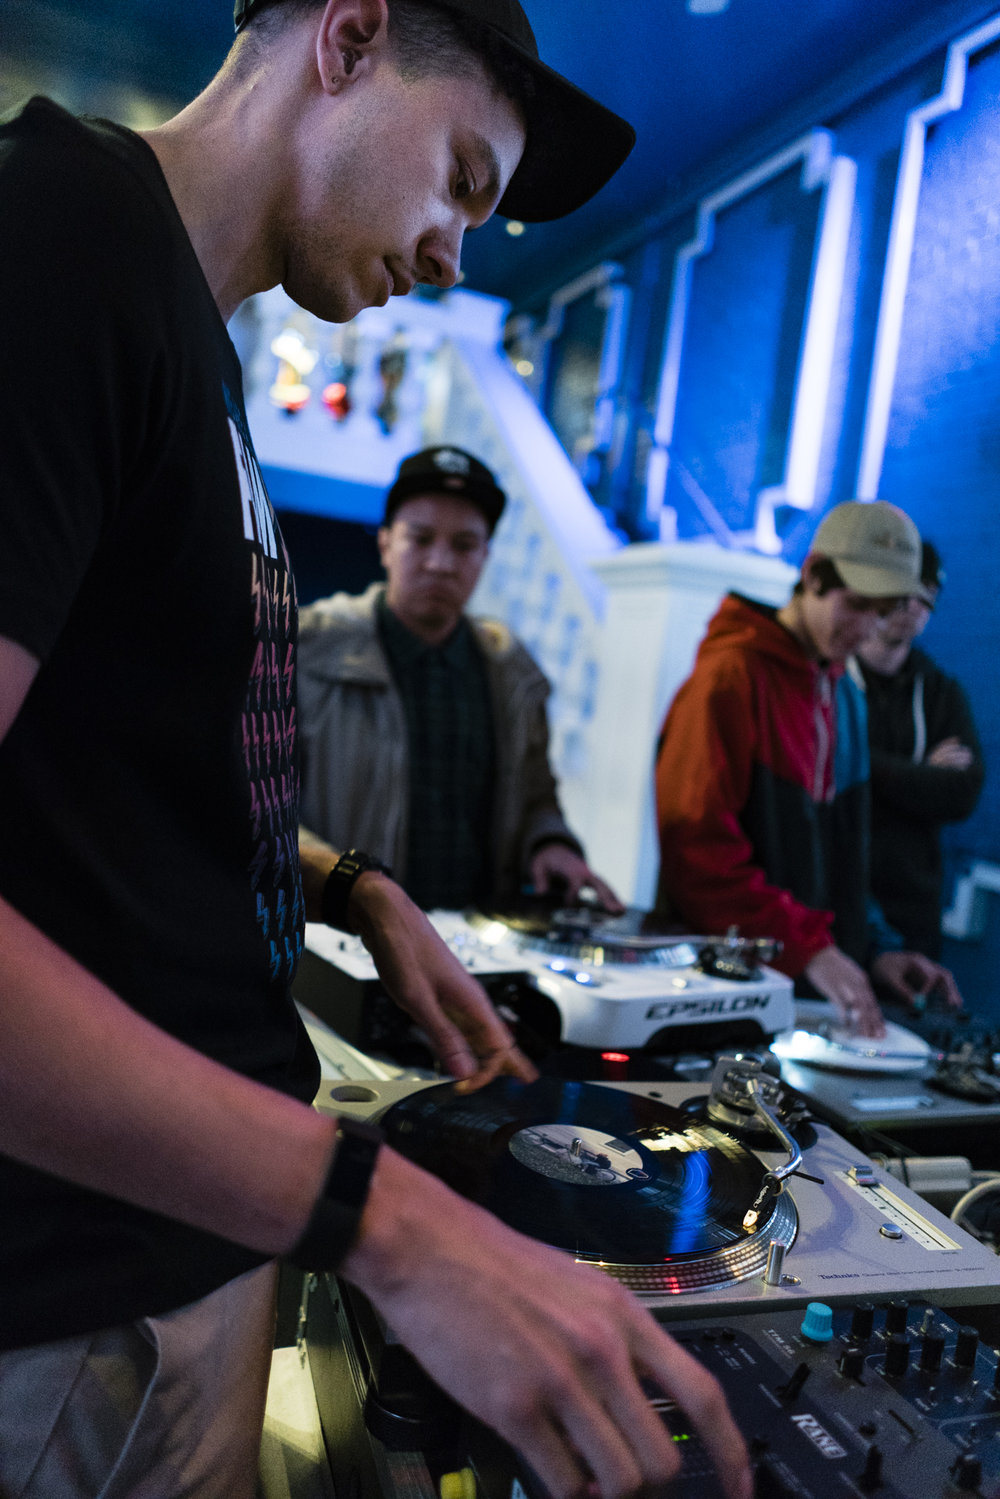 2017_02_02_Skratch Lounge_0066_Export.jpg